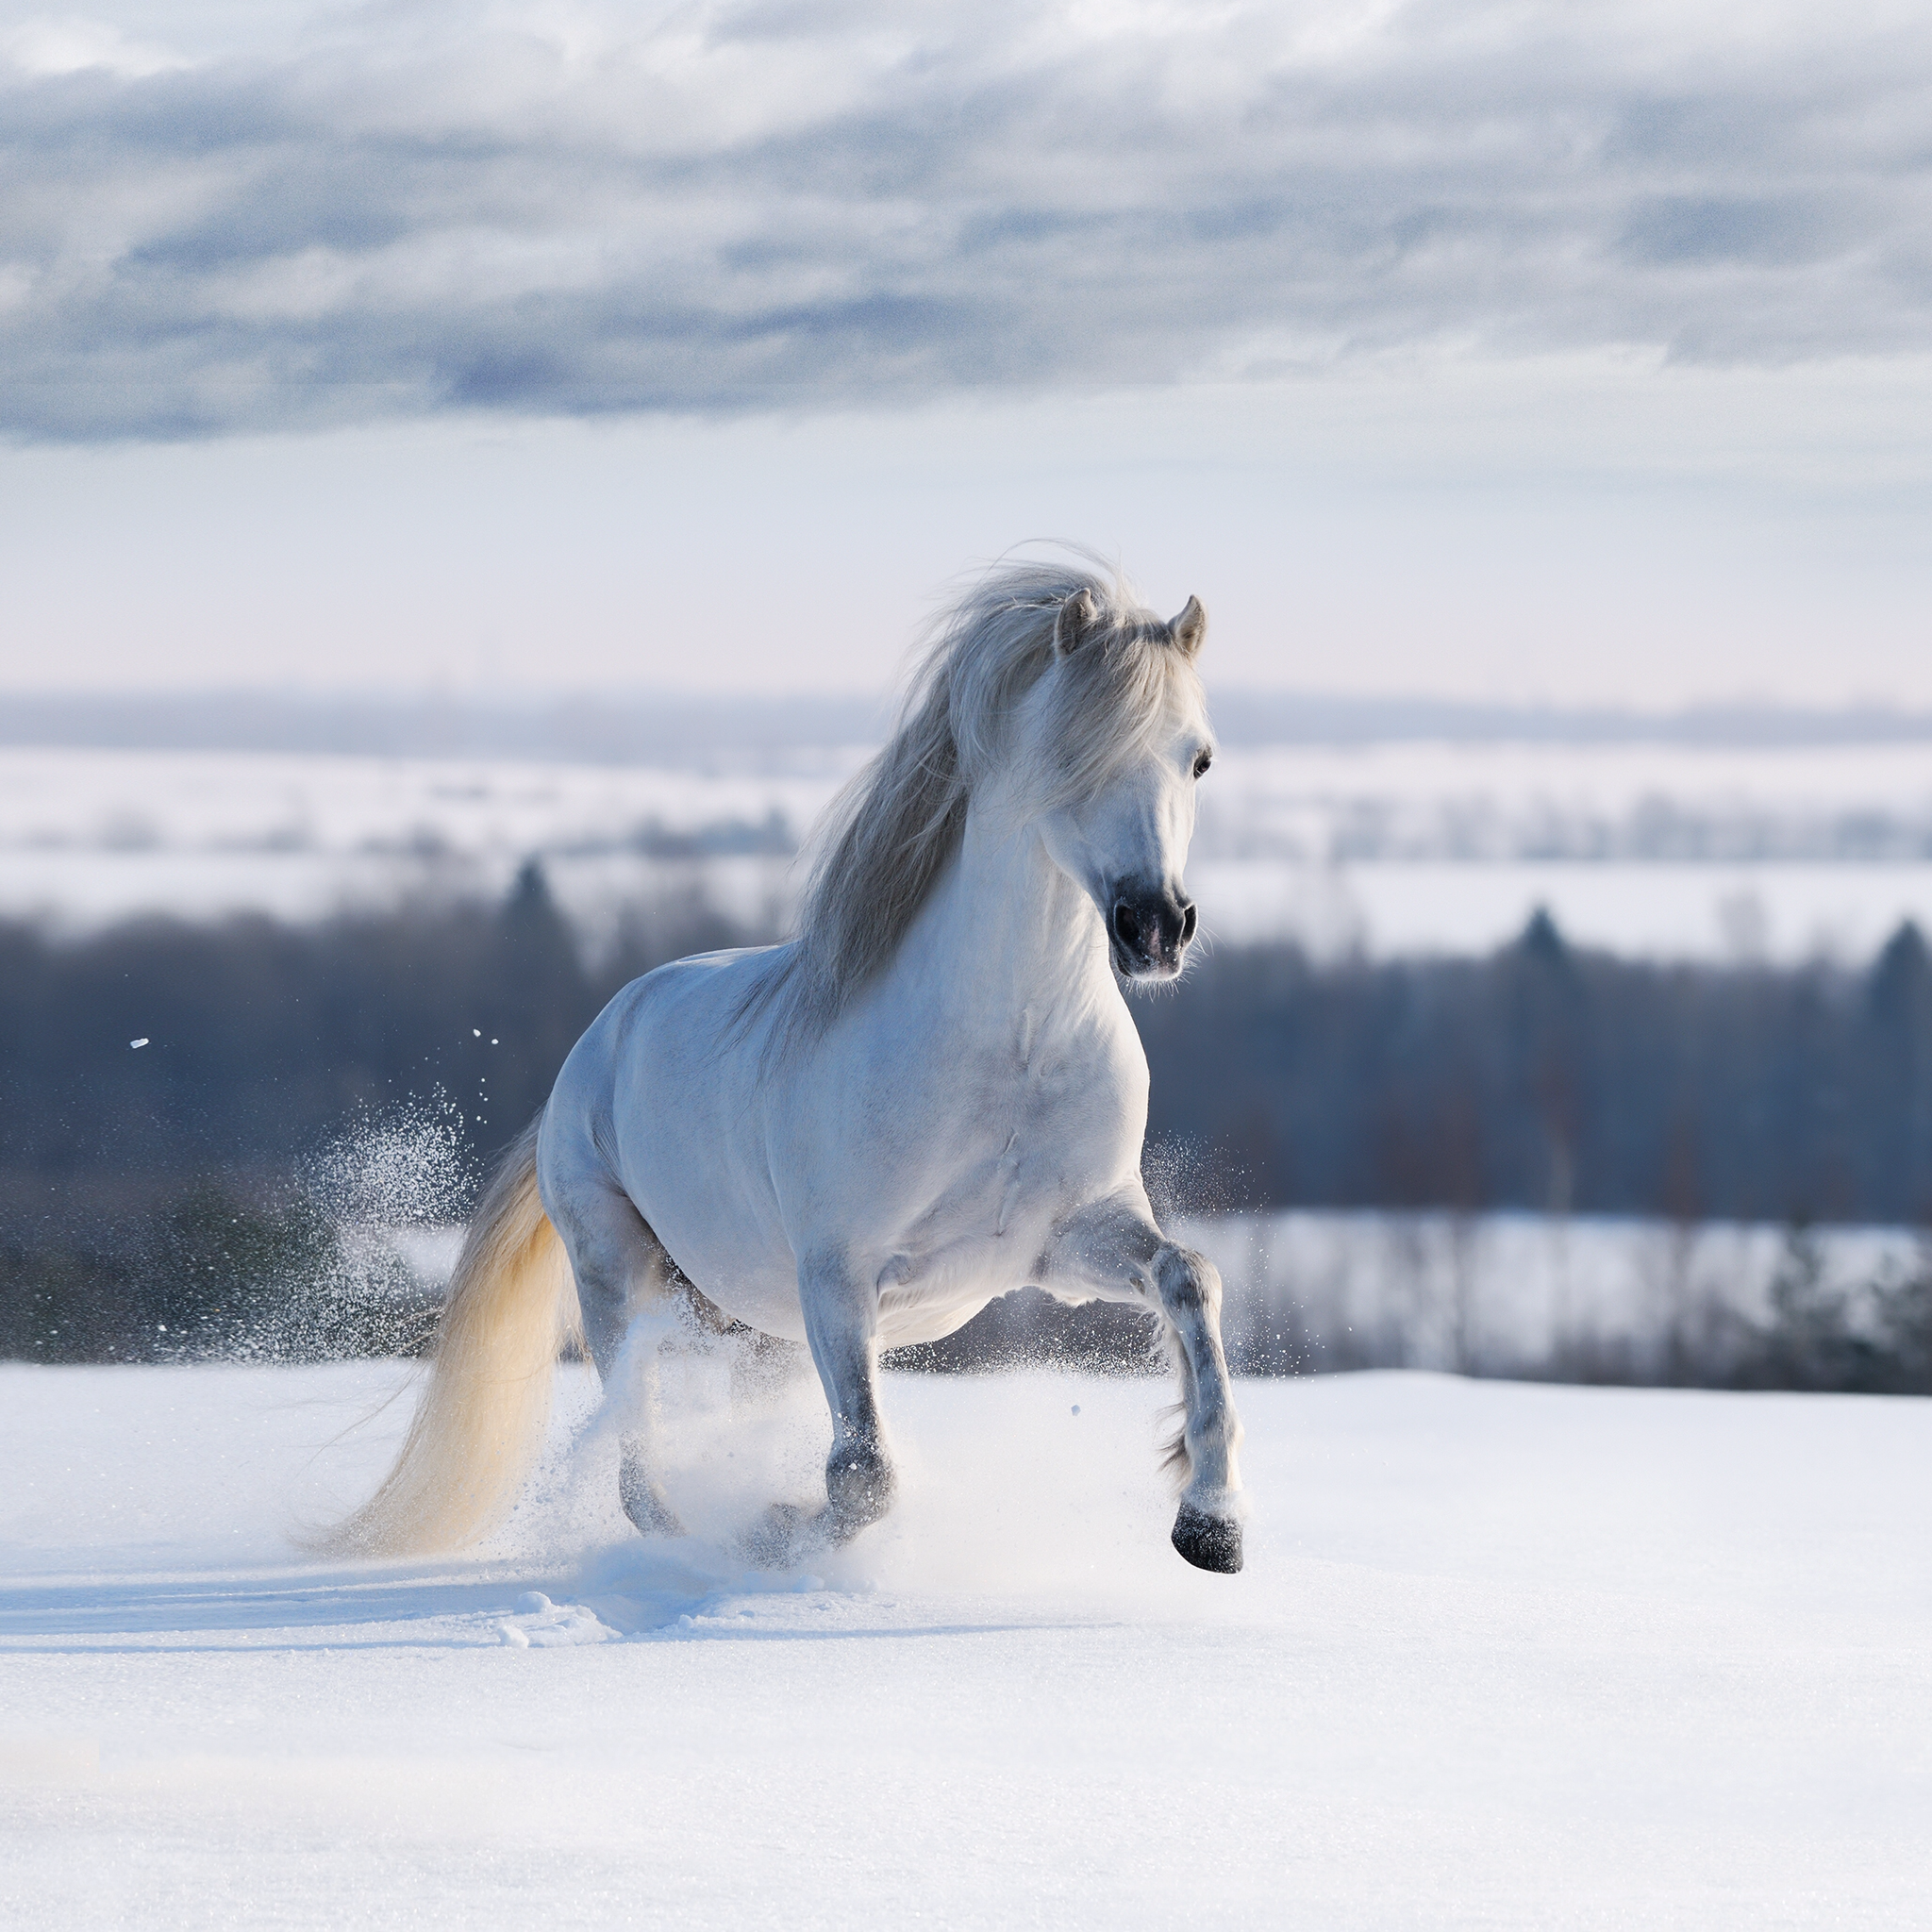 Amazing Wallpaper Horse Snow - fcdfea89eaf4297511b84ad43409fdc5  Collection_59871.png